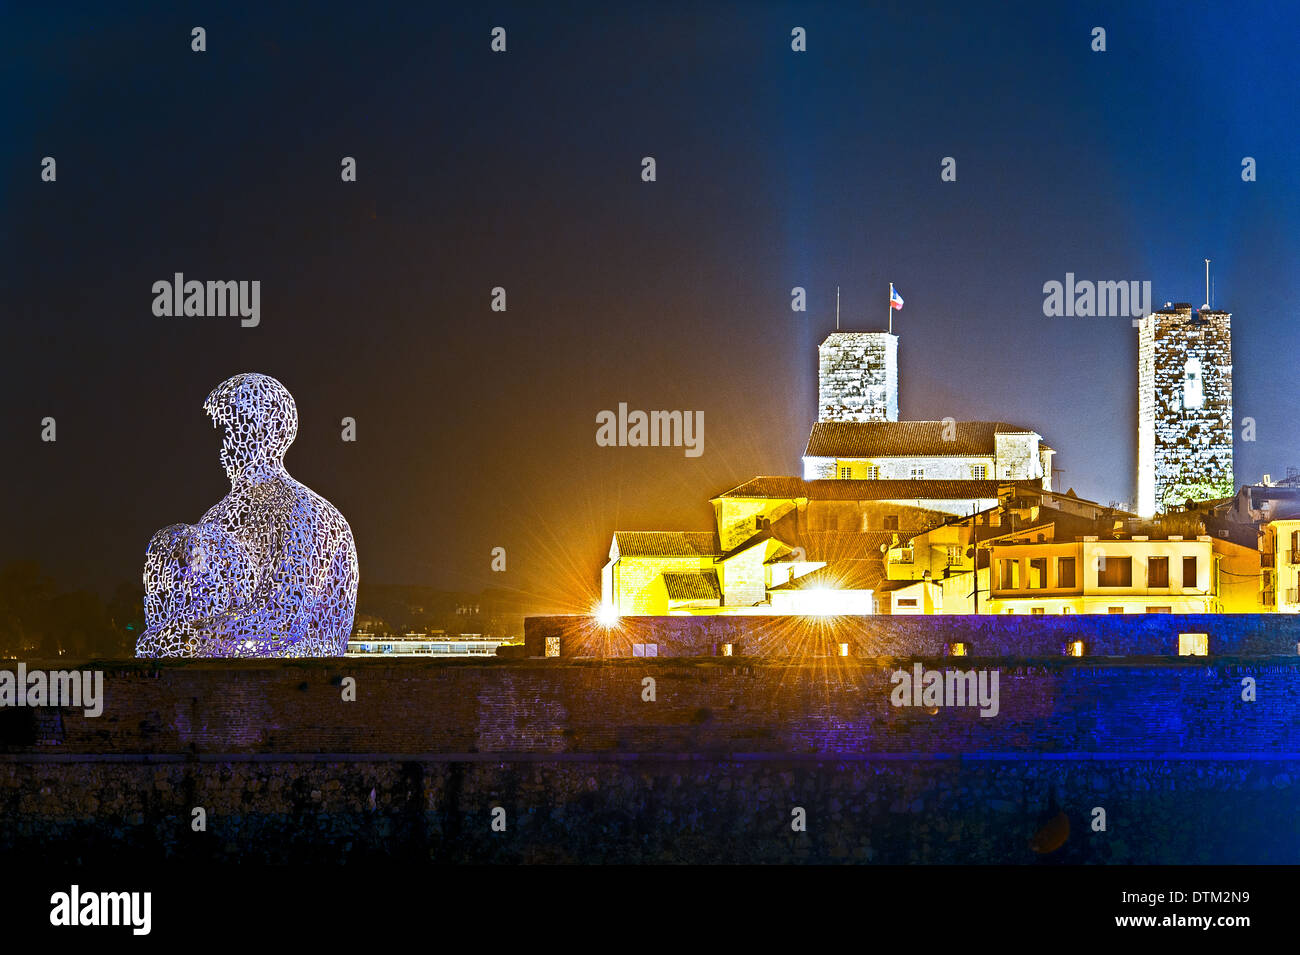 Europe, France, Alpes-Maritimes, Antibes. Old town at night and sculpture by Catalan artist Jaume Plensa entitled Nomad. - Stock Image